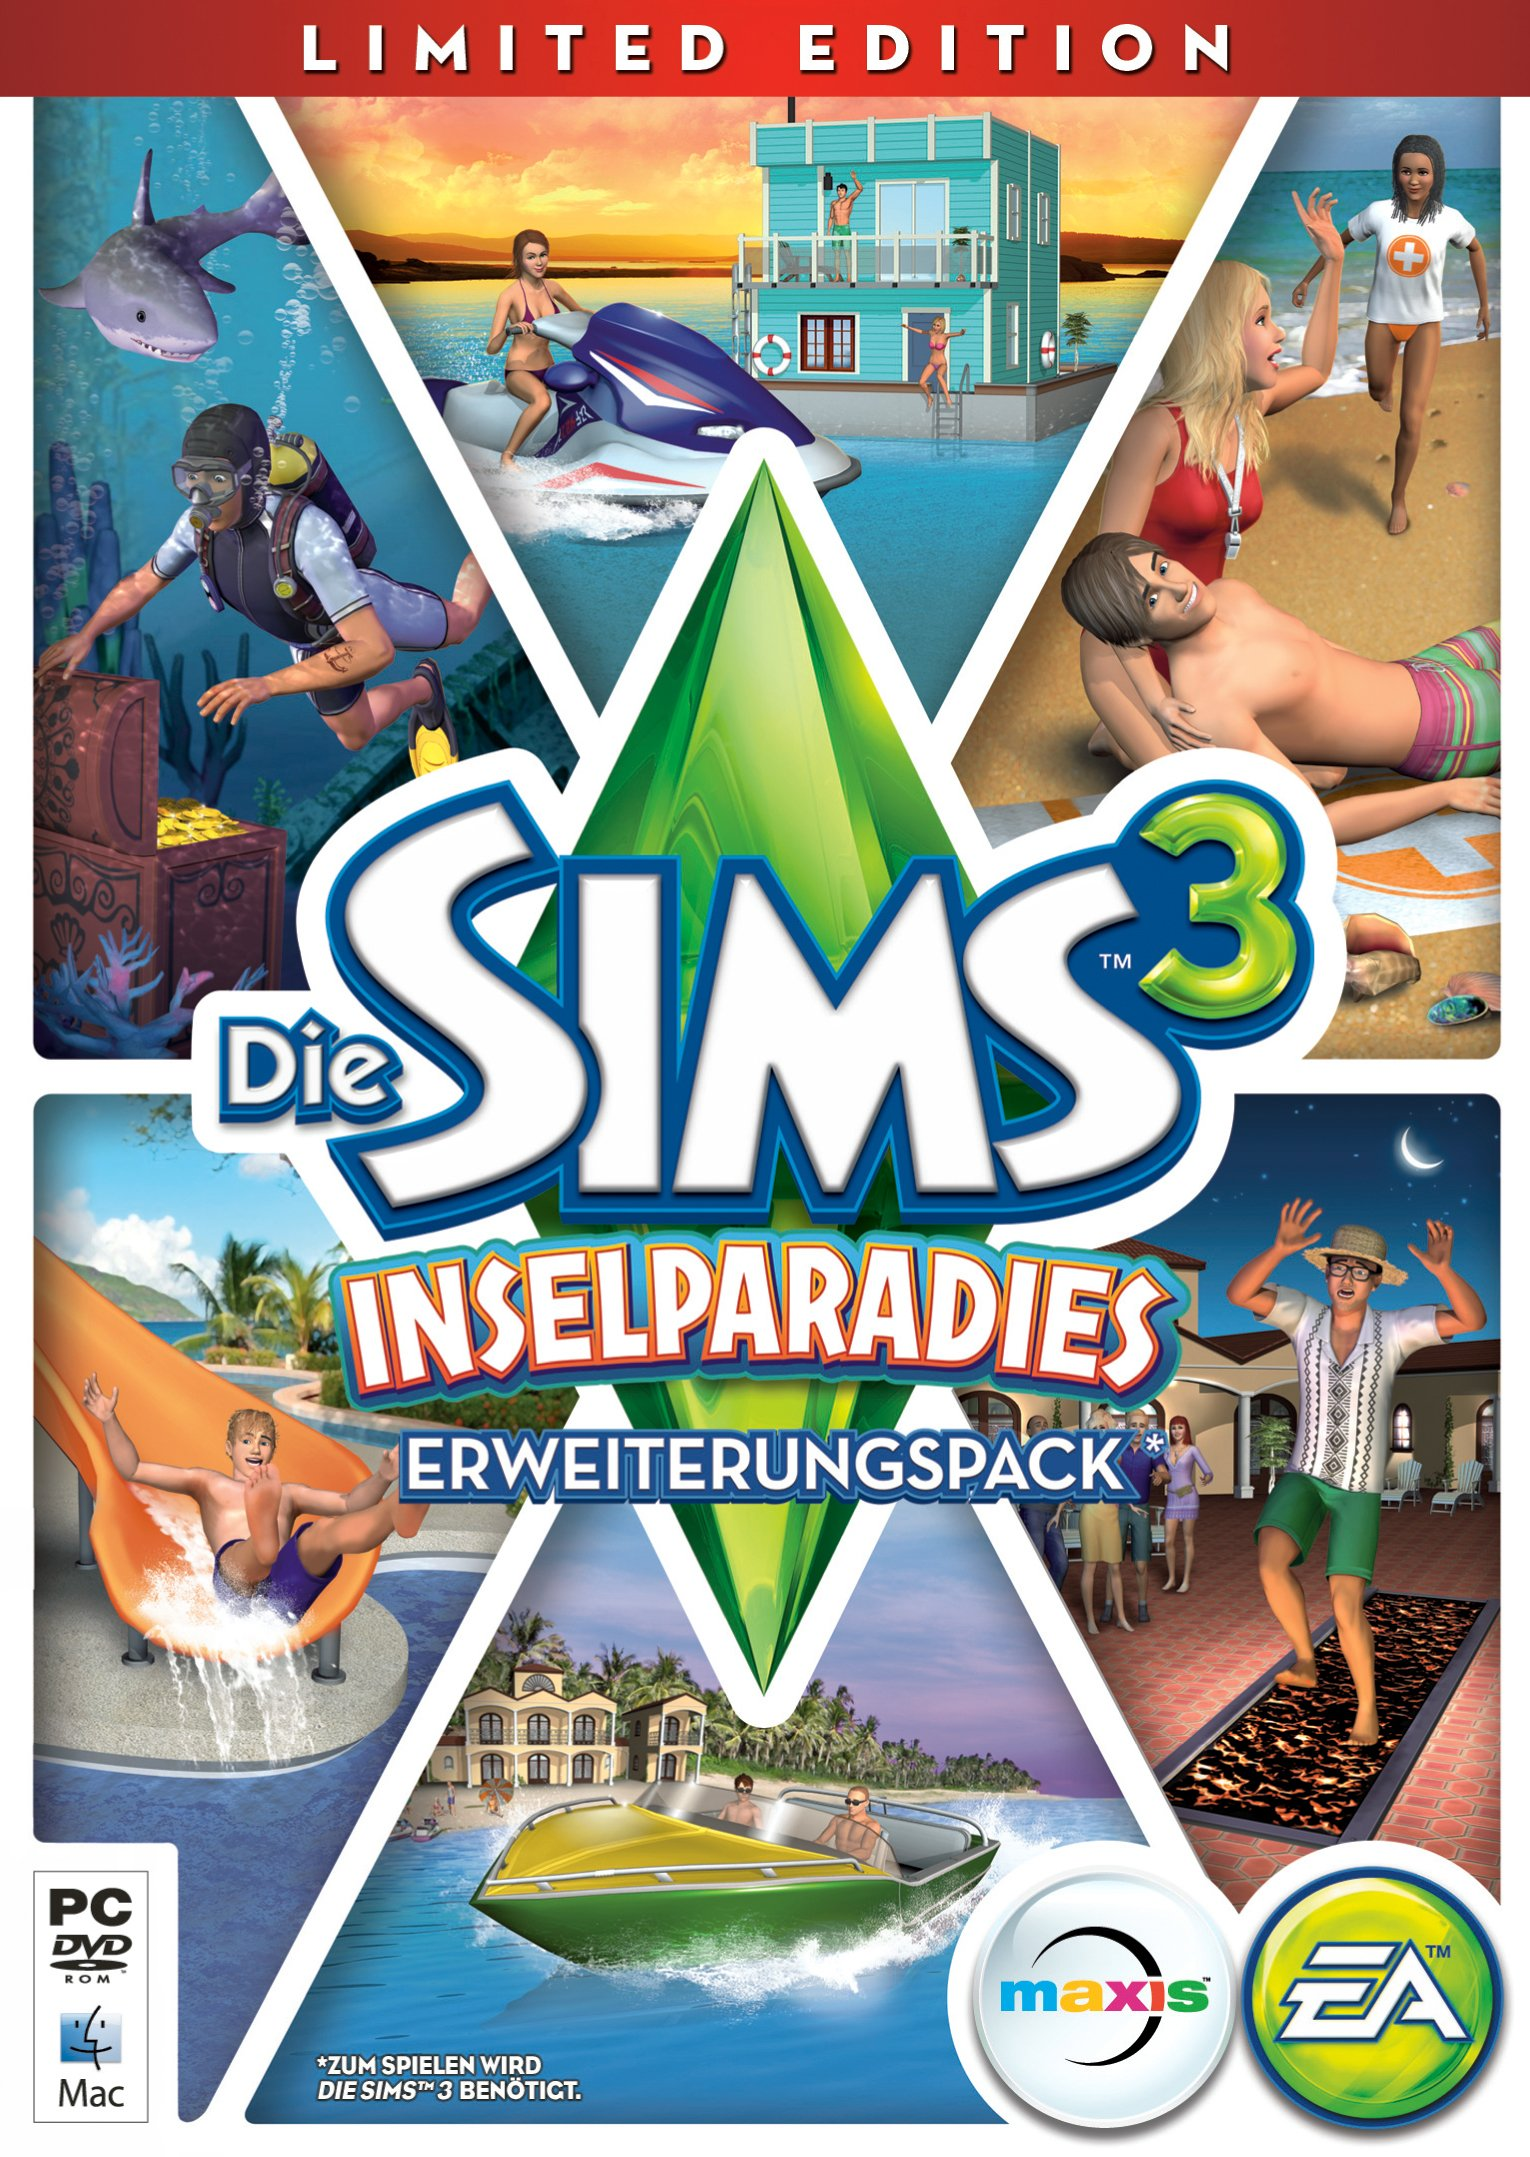 Die Sims 3: Inselparadies - Limited Edition product image